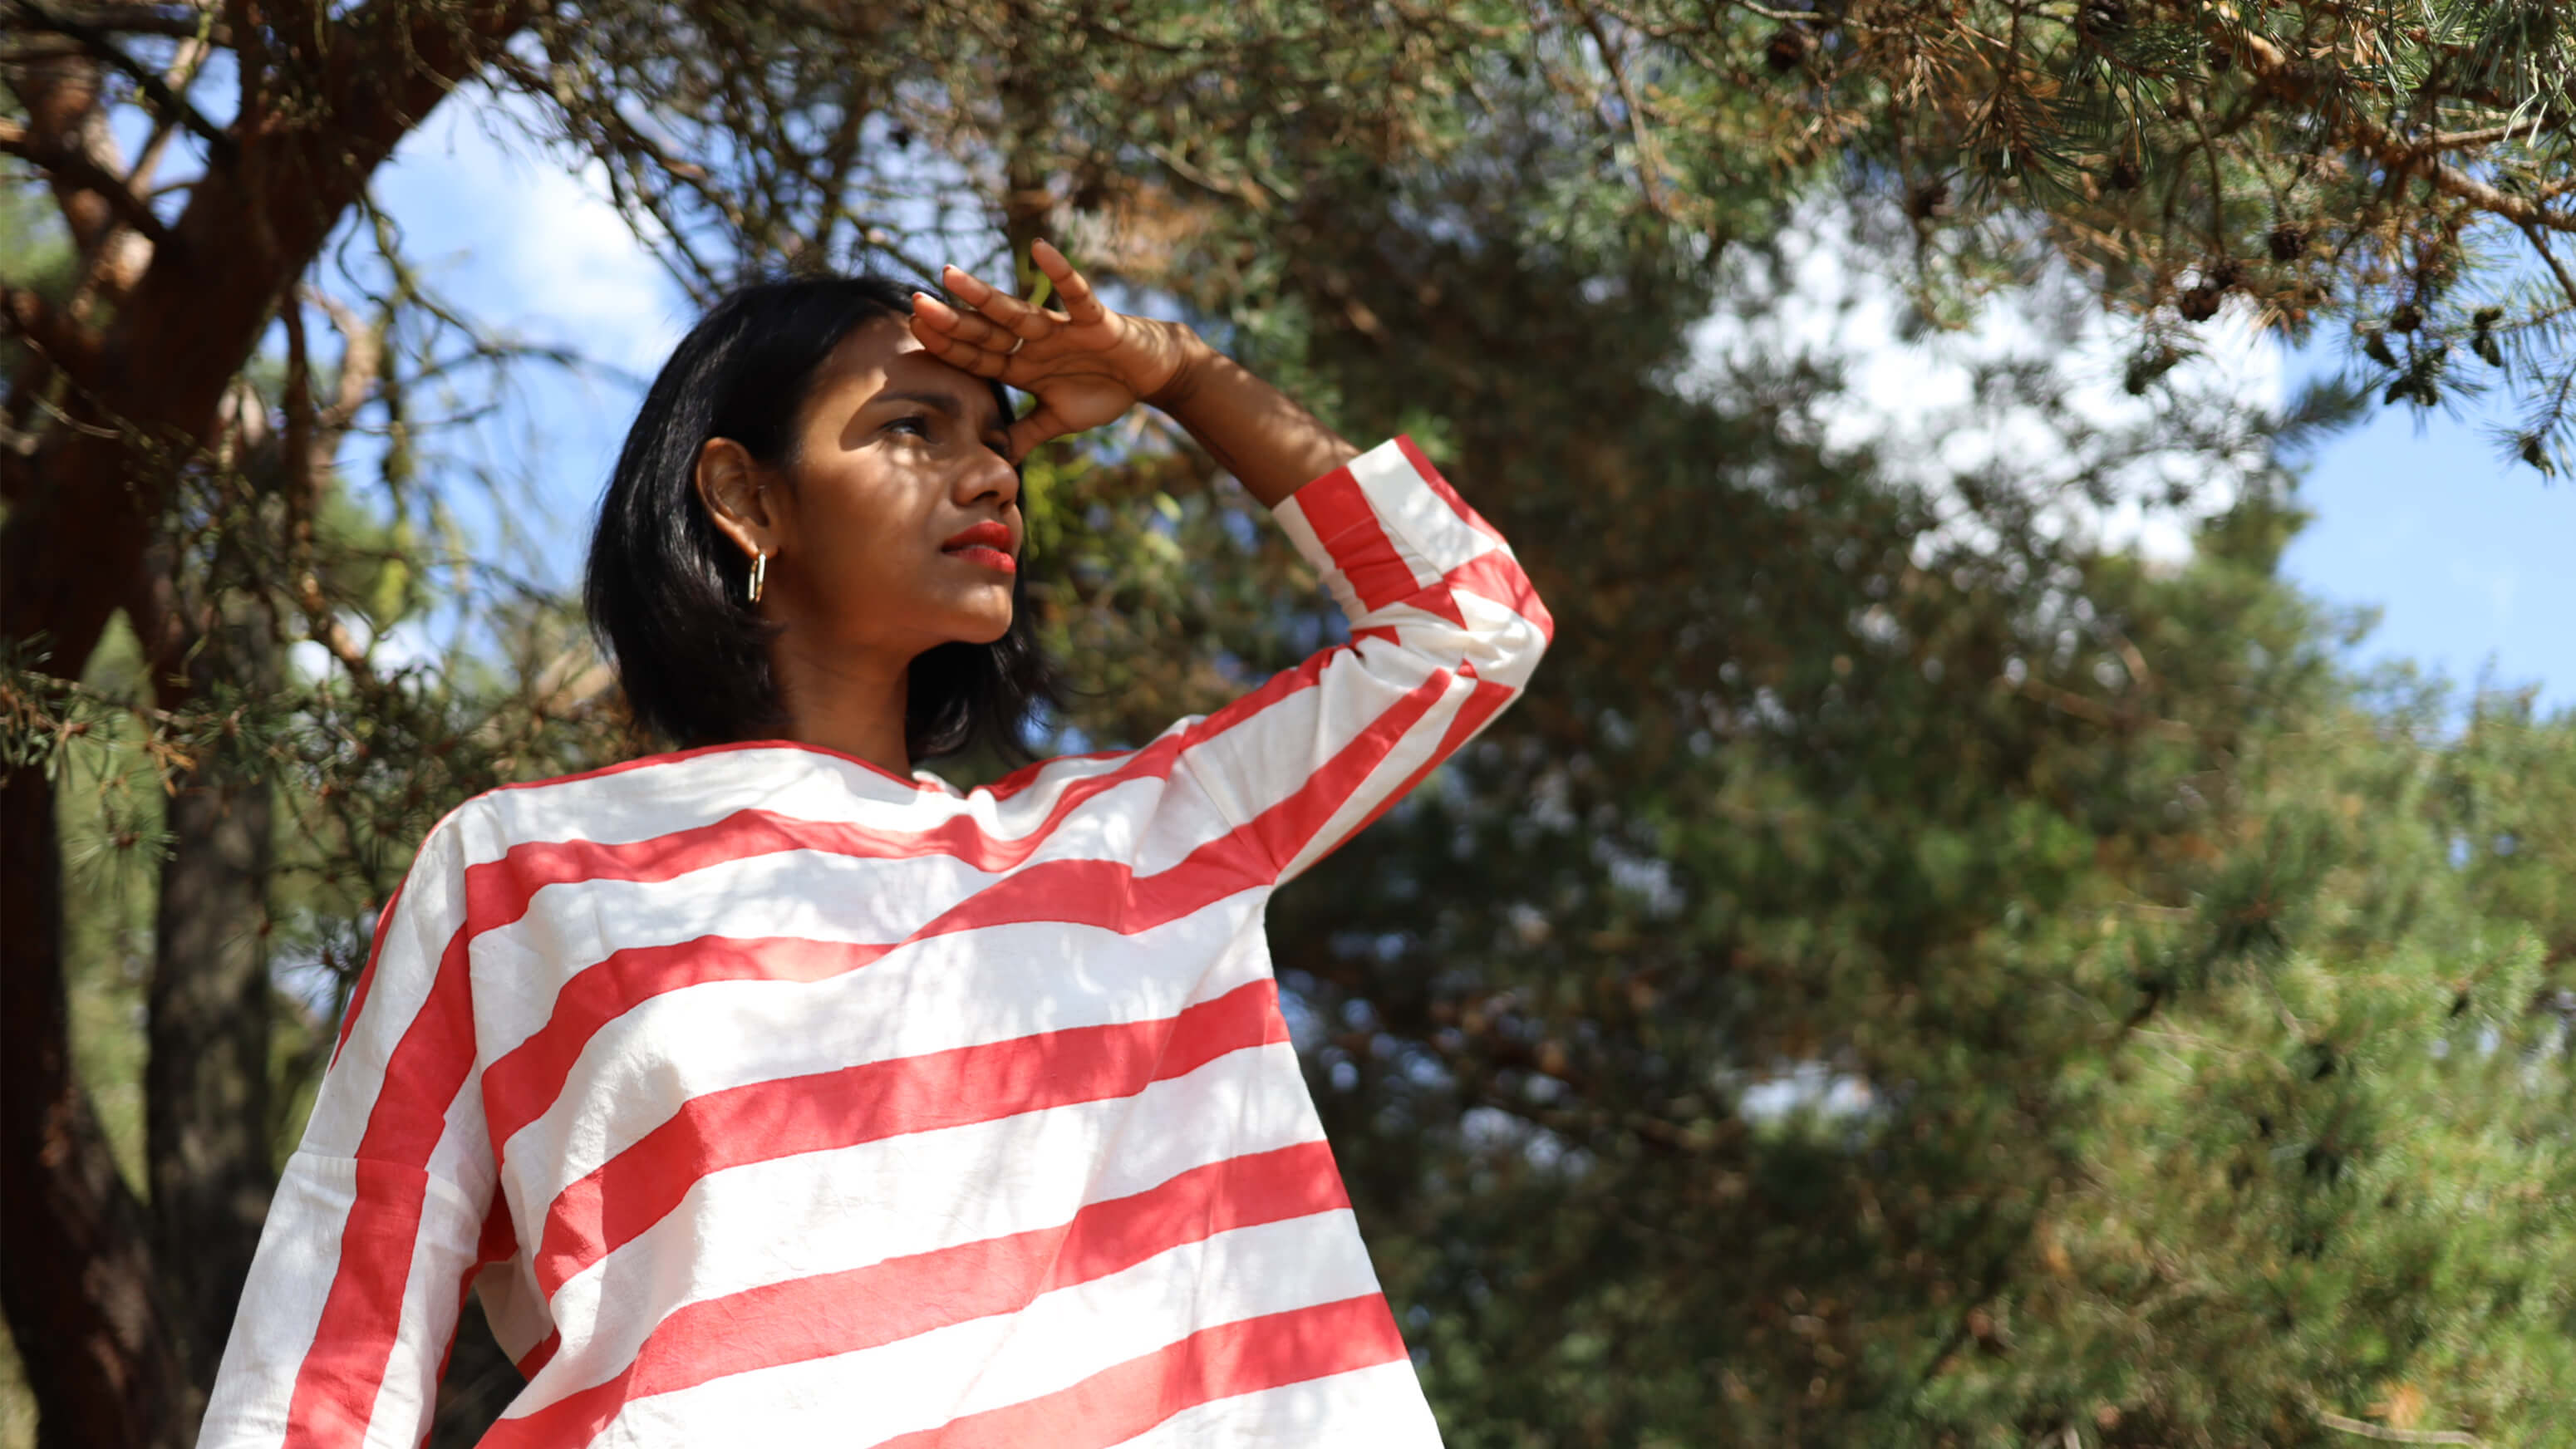 female model wearing red white striped cotton top with a green background and hand raised to shield from the sun